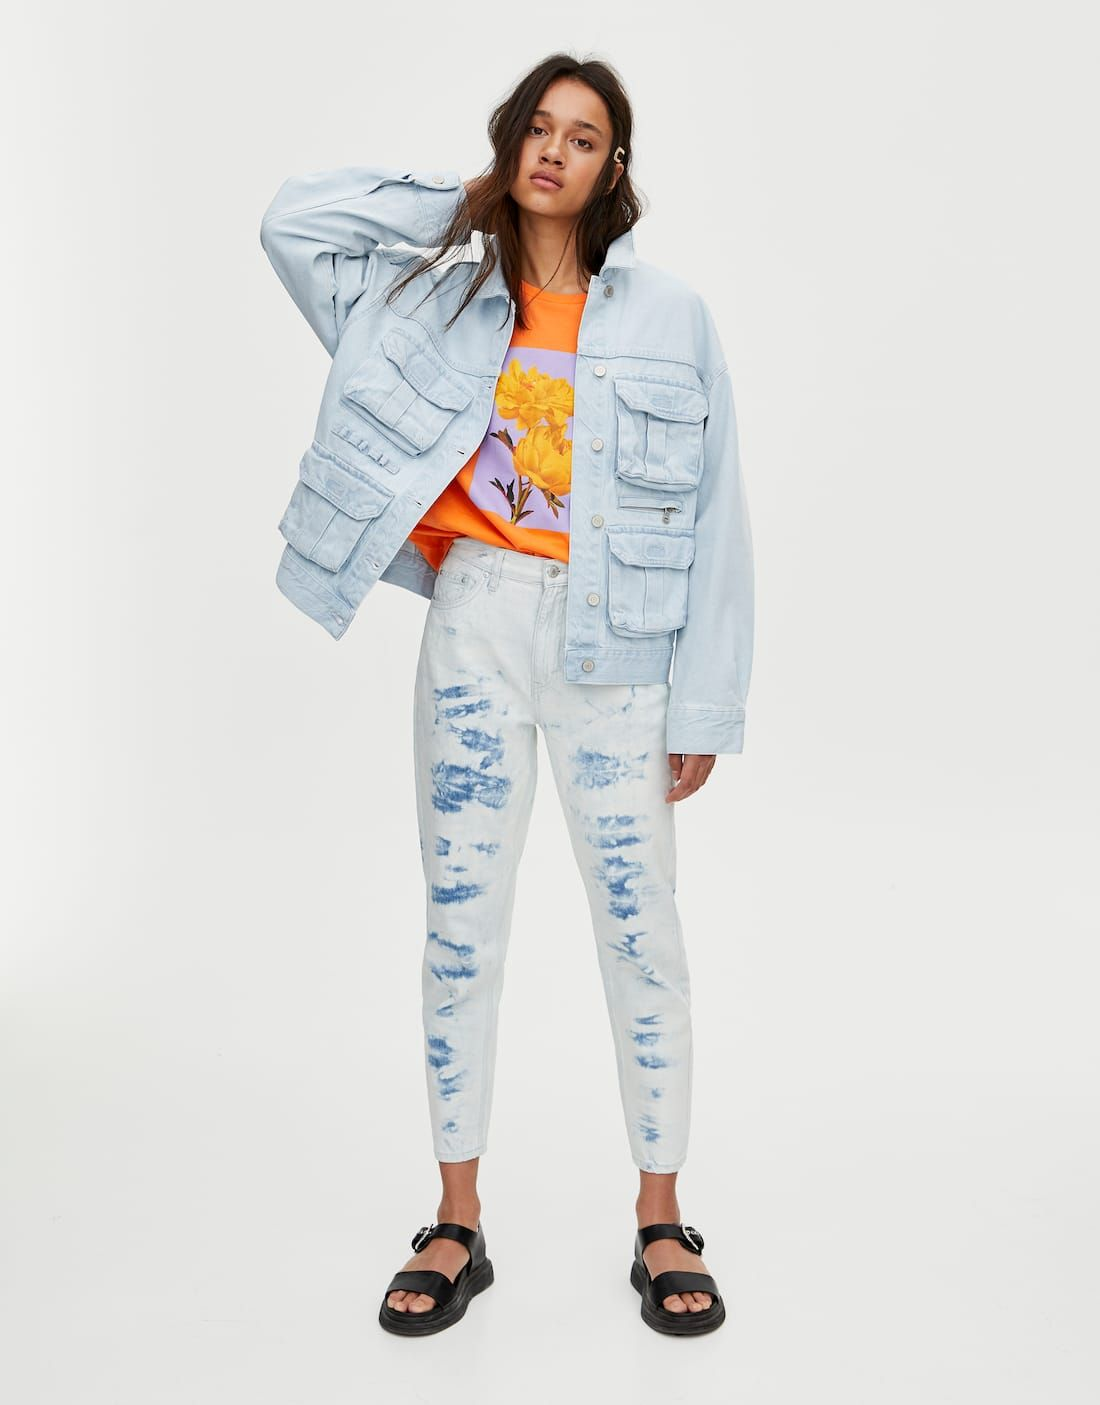 fd2b73b3f86a Women s Denim Jackets - Spring Summer 2019